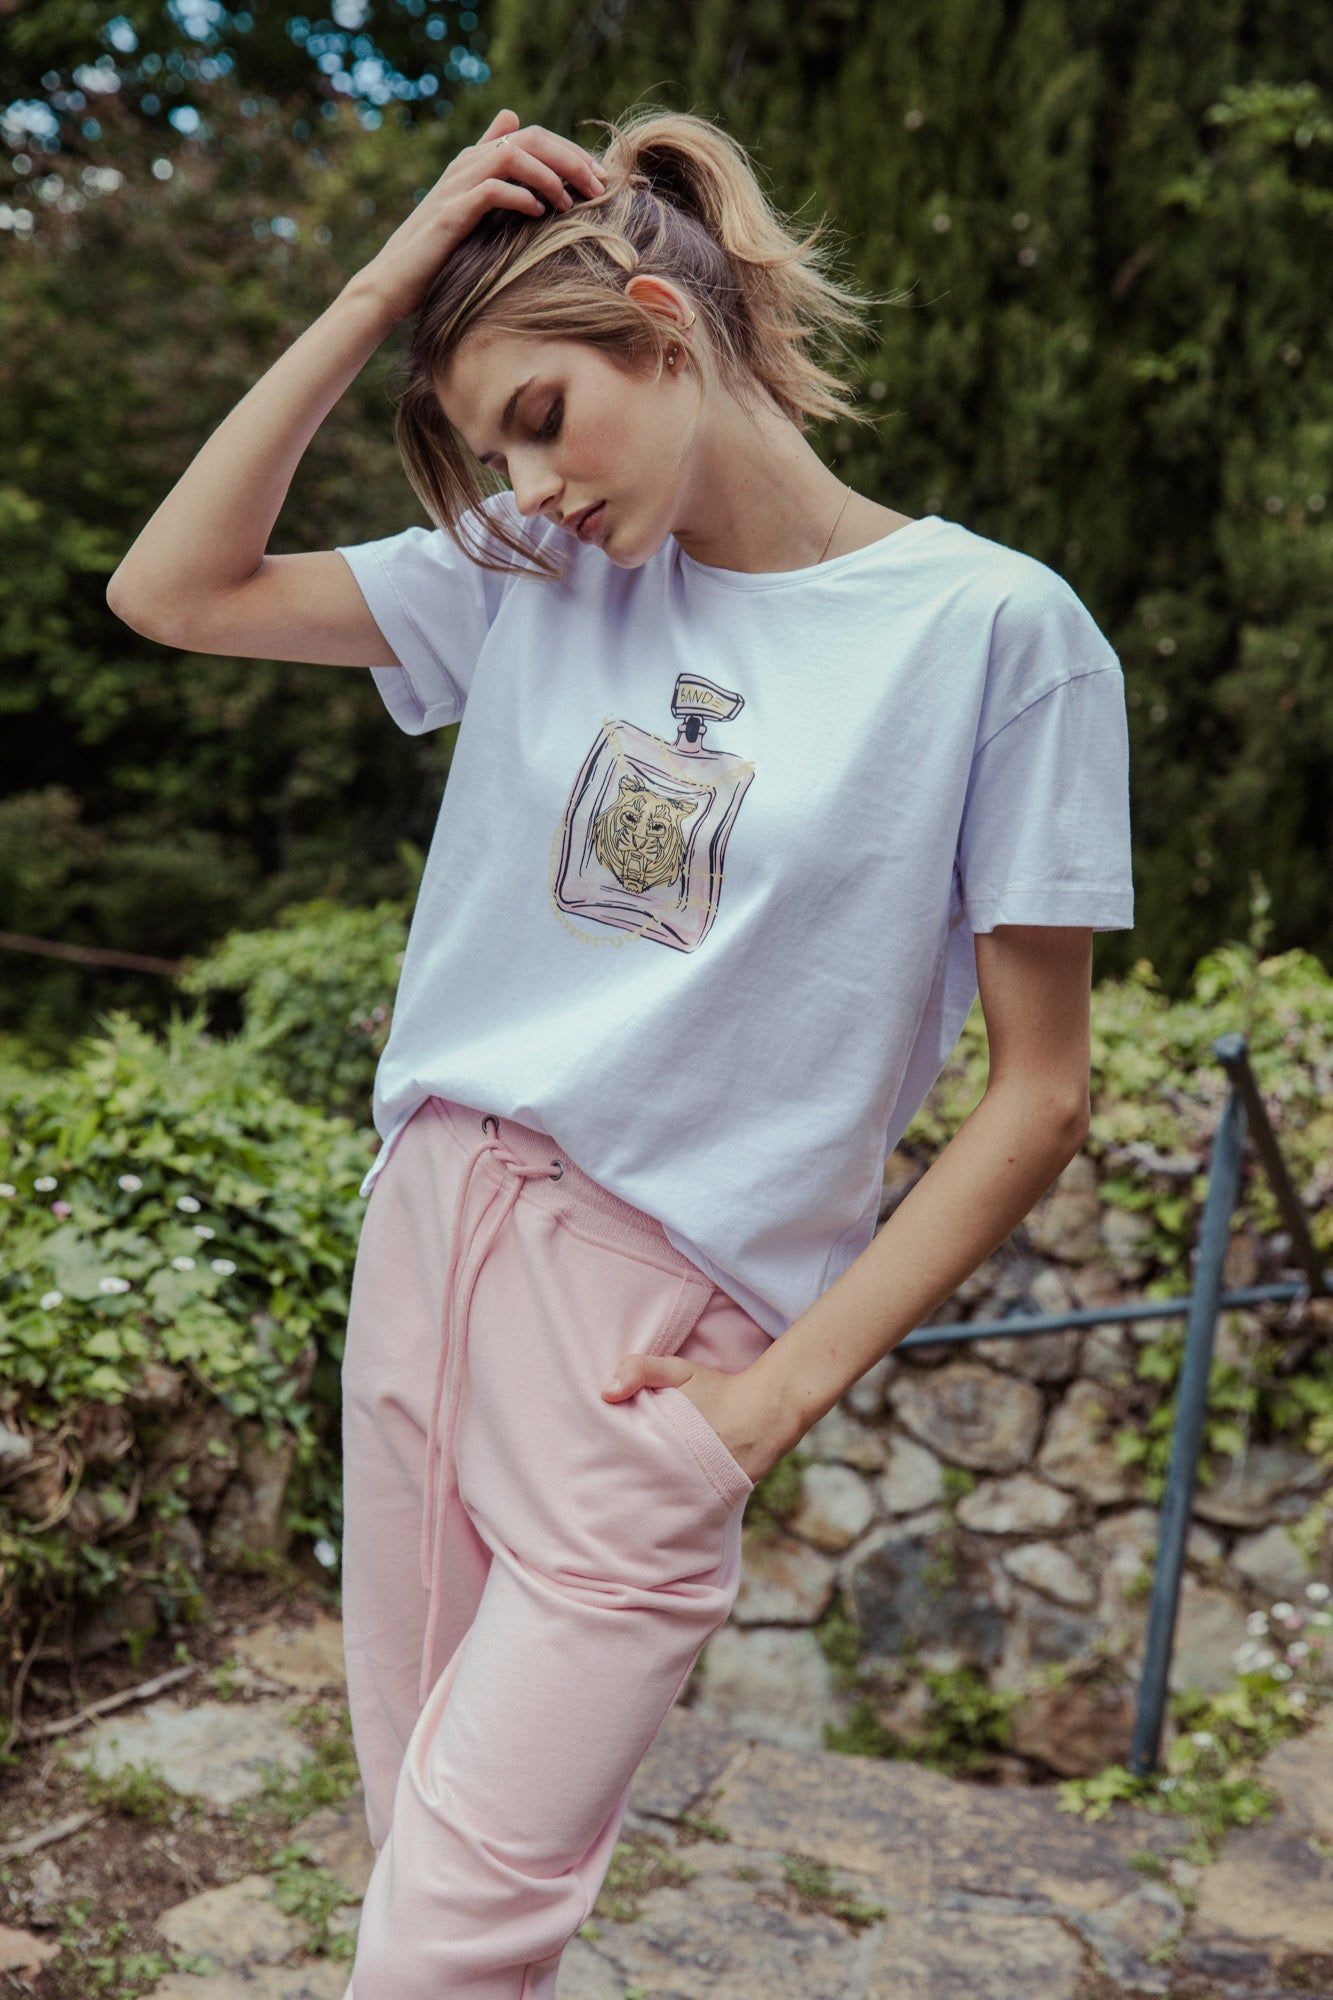 Fragrant Tiger Tee - white / rose pink